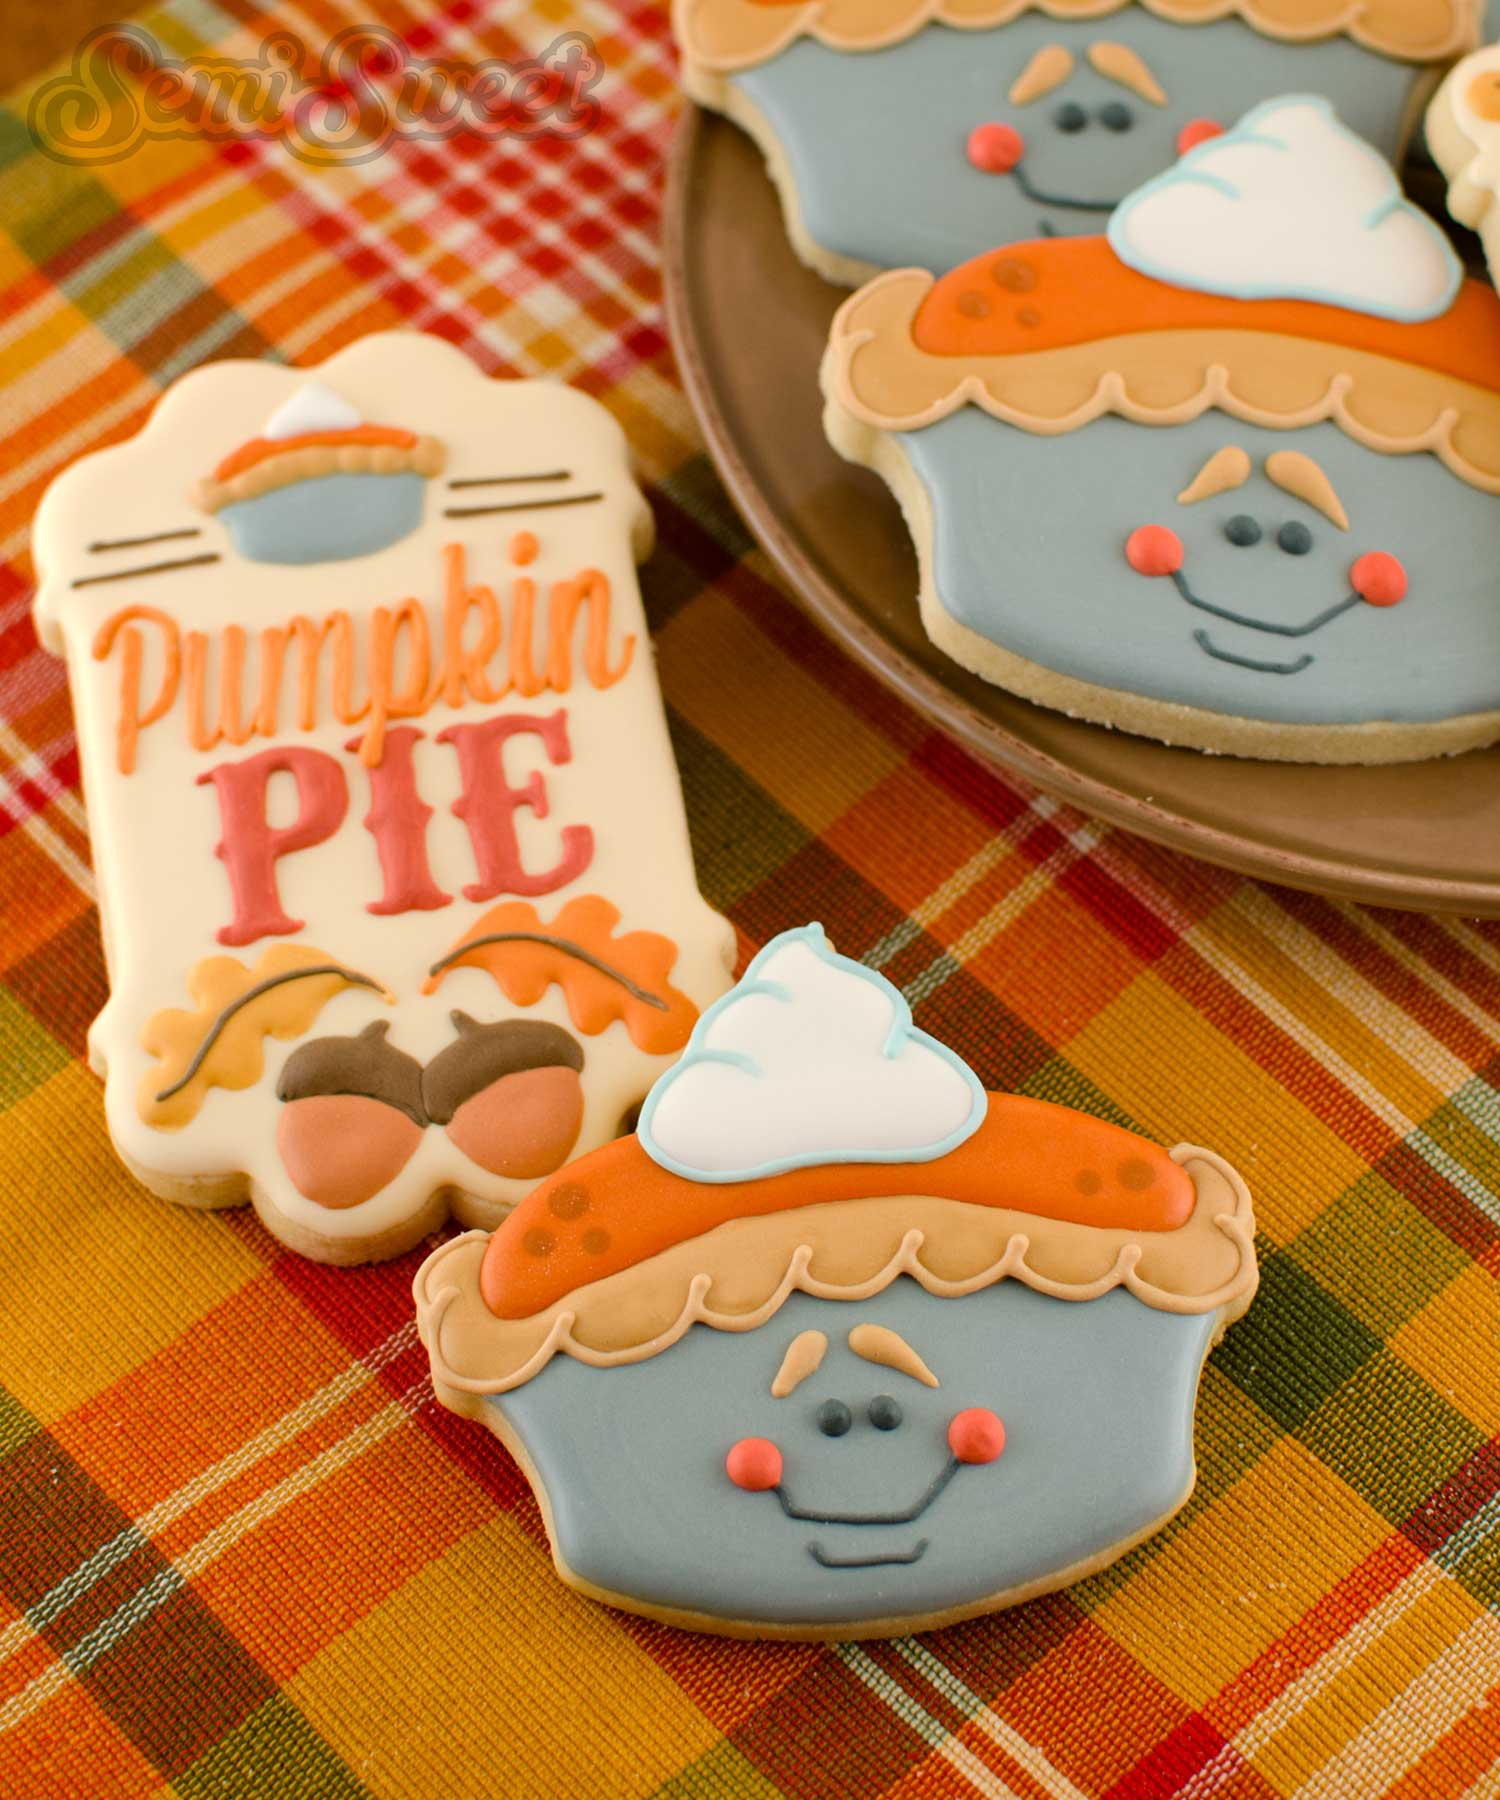 How to Make Pumpkin Pie Cookies by Semi Sweet Designs